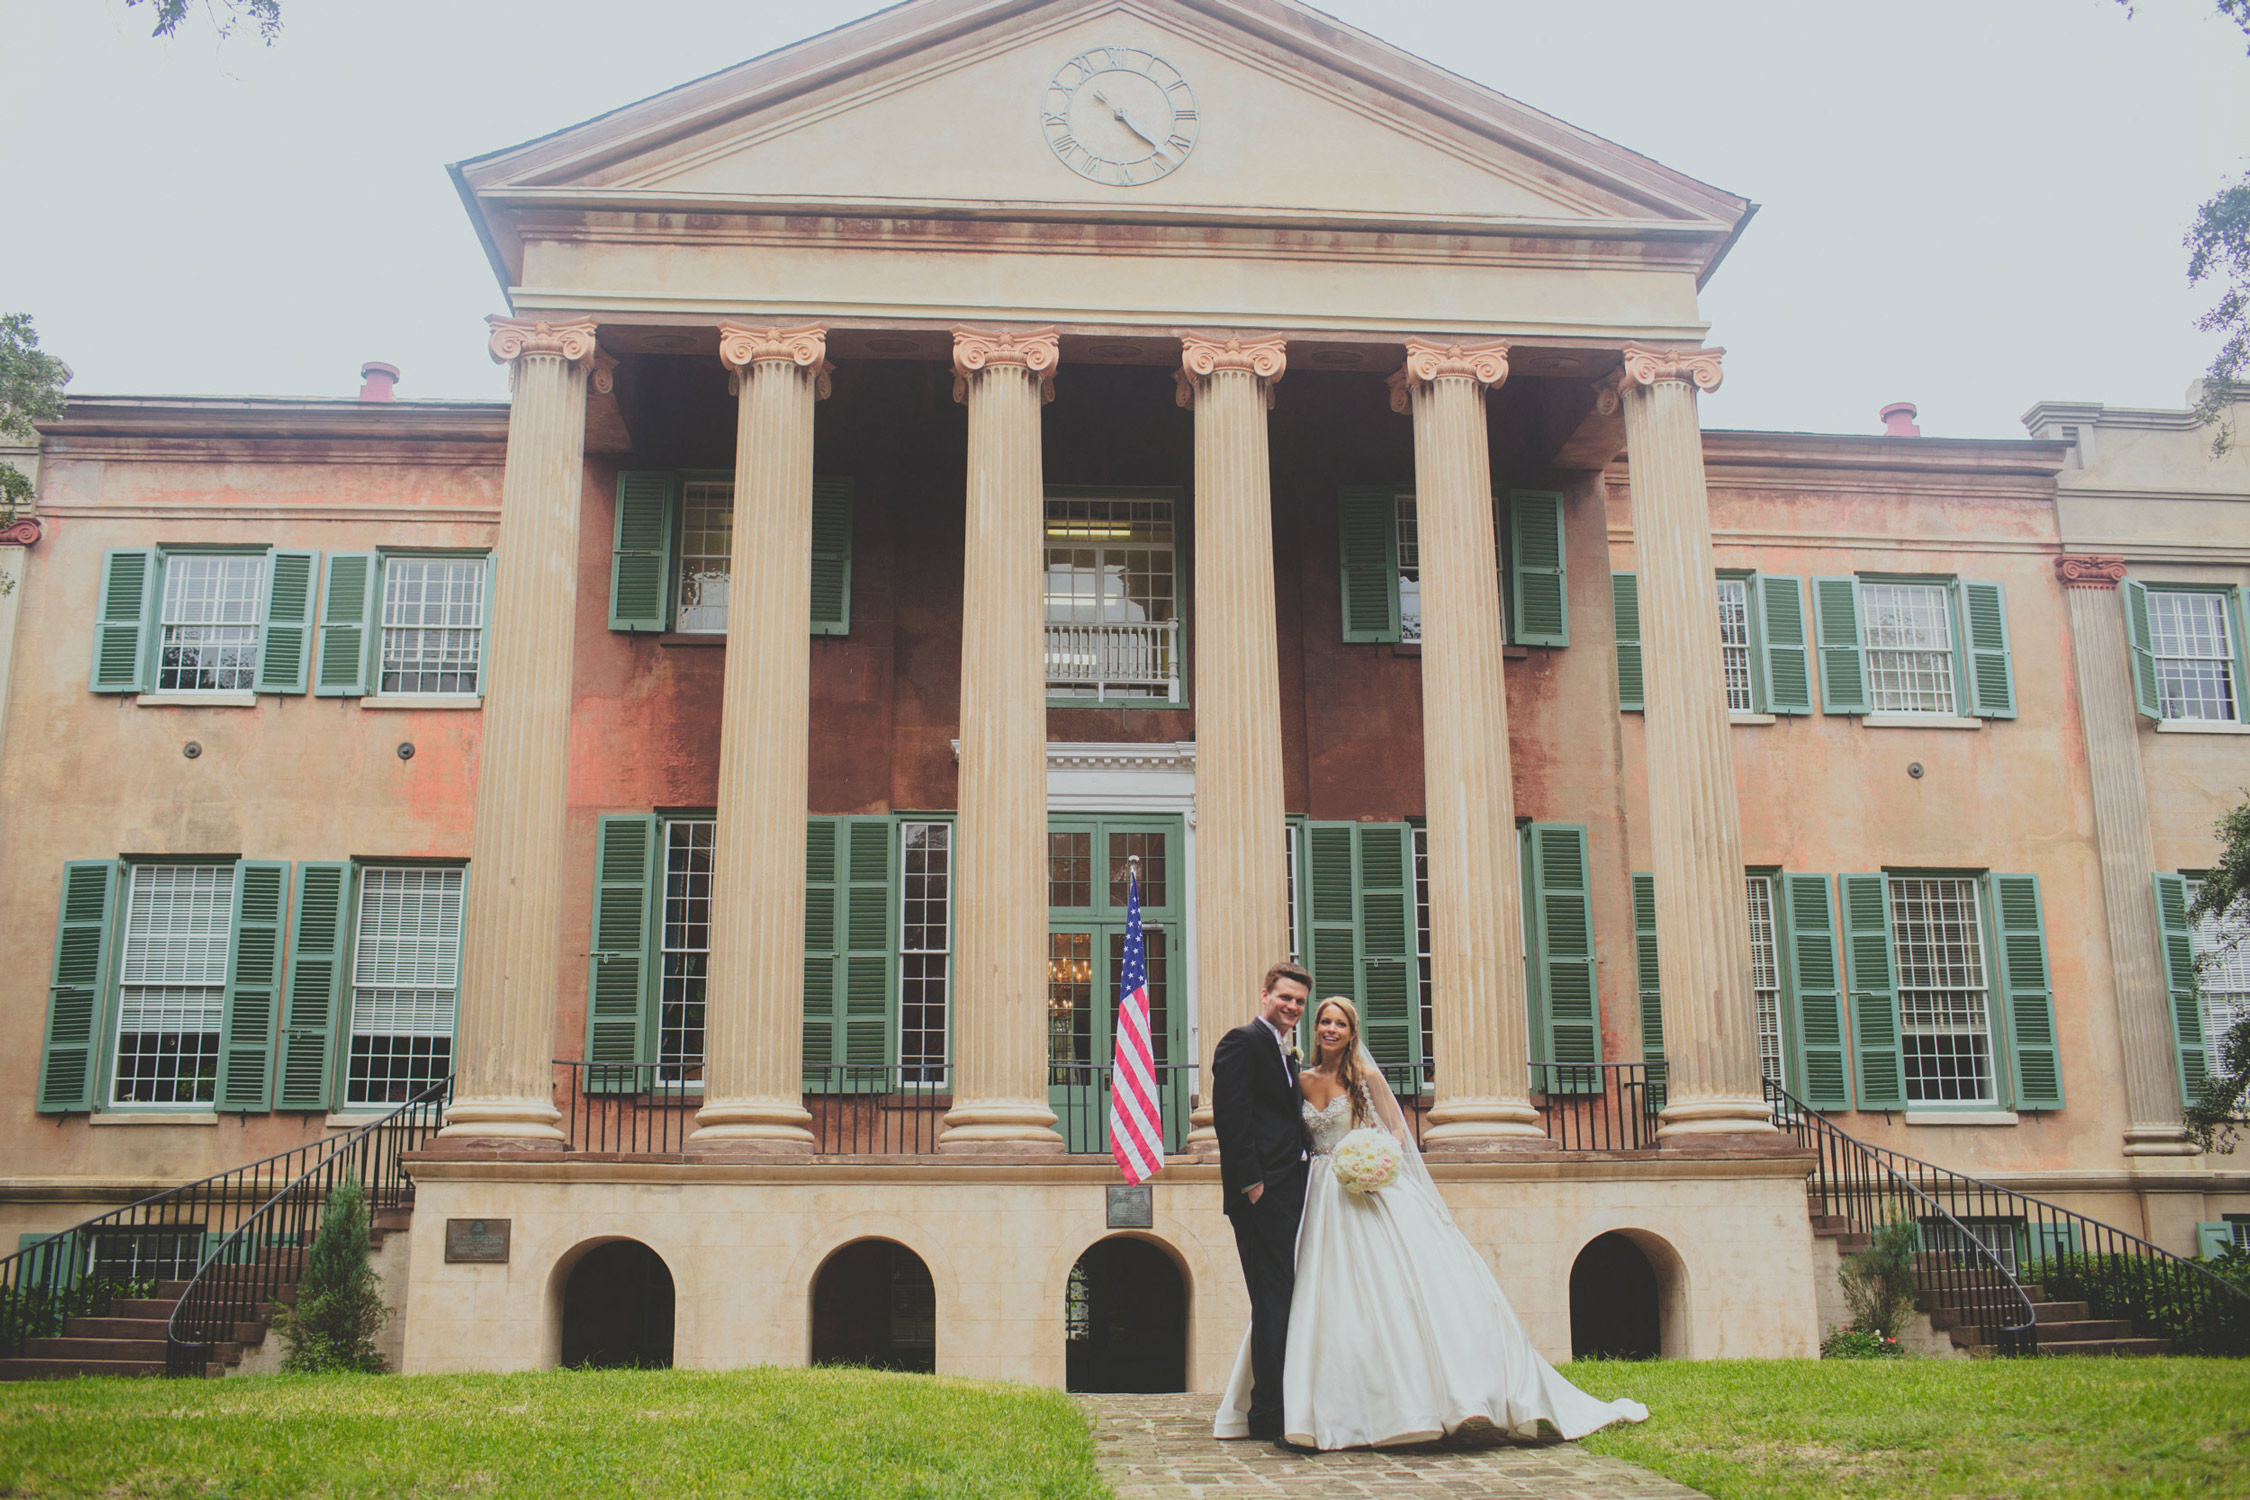 married dating in newberry south carolina The legal age of consent in south carolina is 16 however, individuals as young  as 14 years old are able to consent to have sex with a partner who is 18 years.